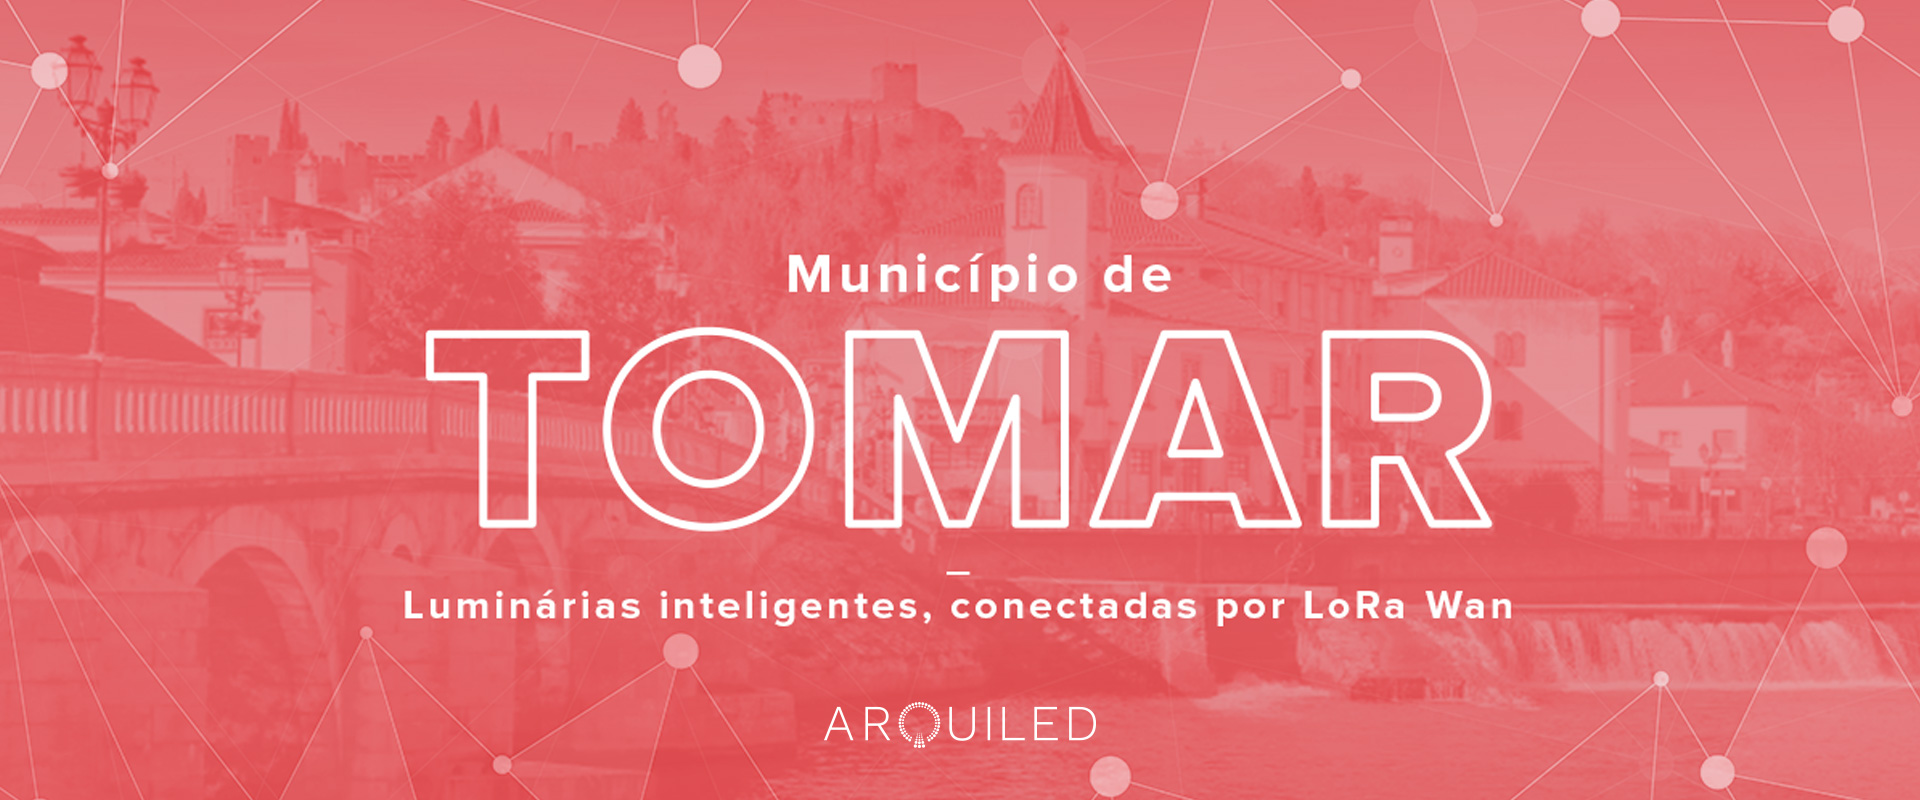 Arquiled - Projeto Tomar